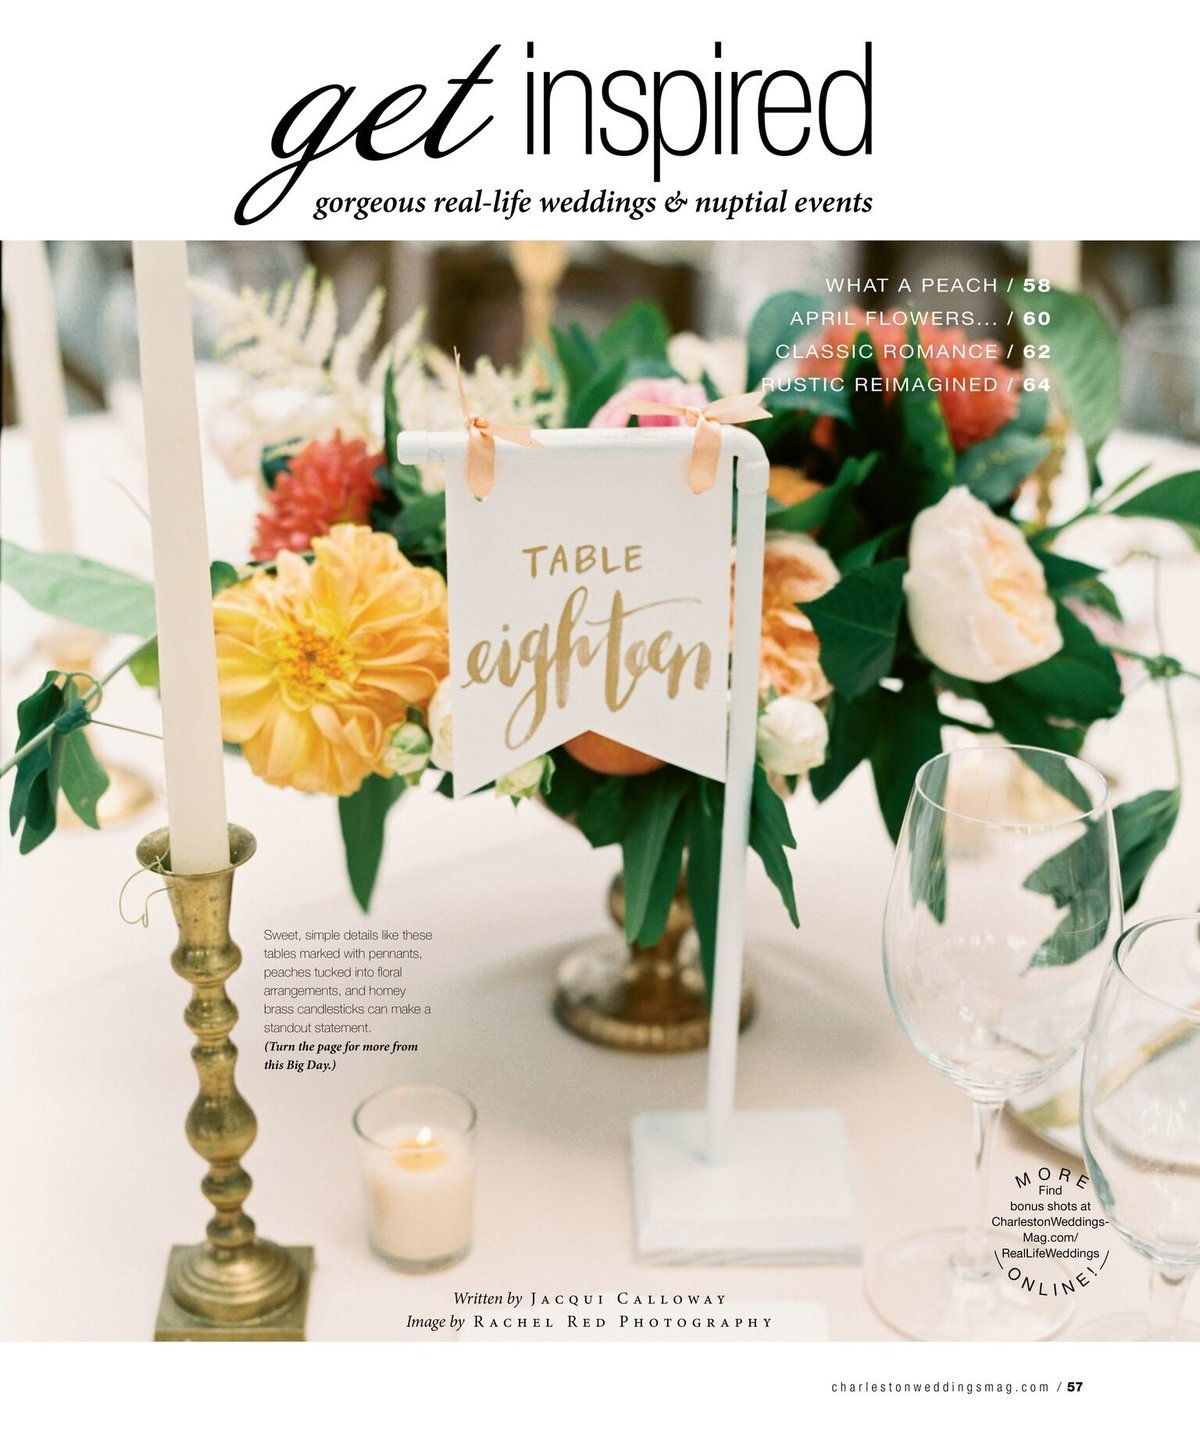 Charleston Weddings Magazine 2